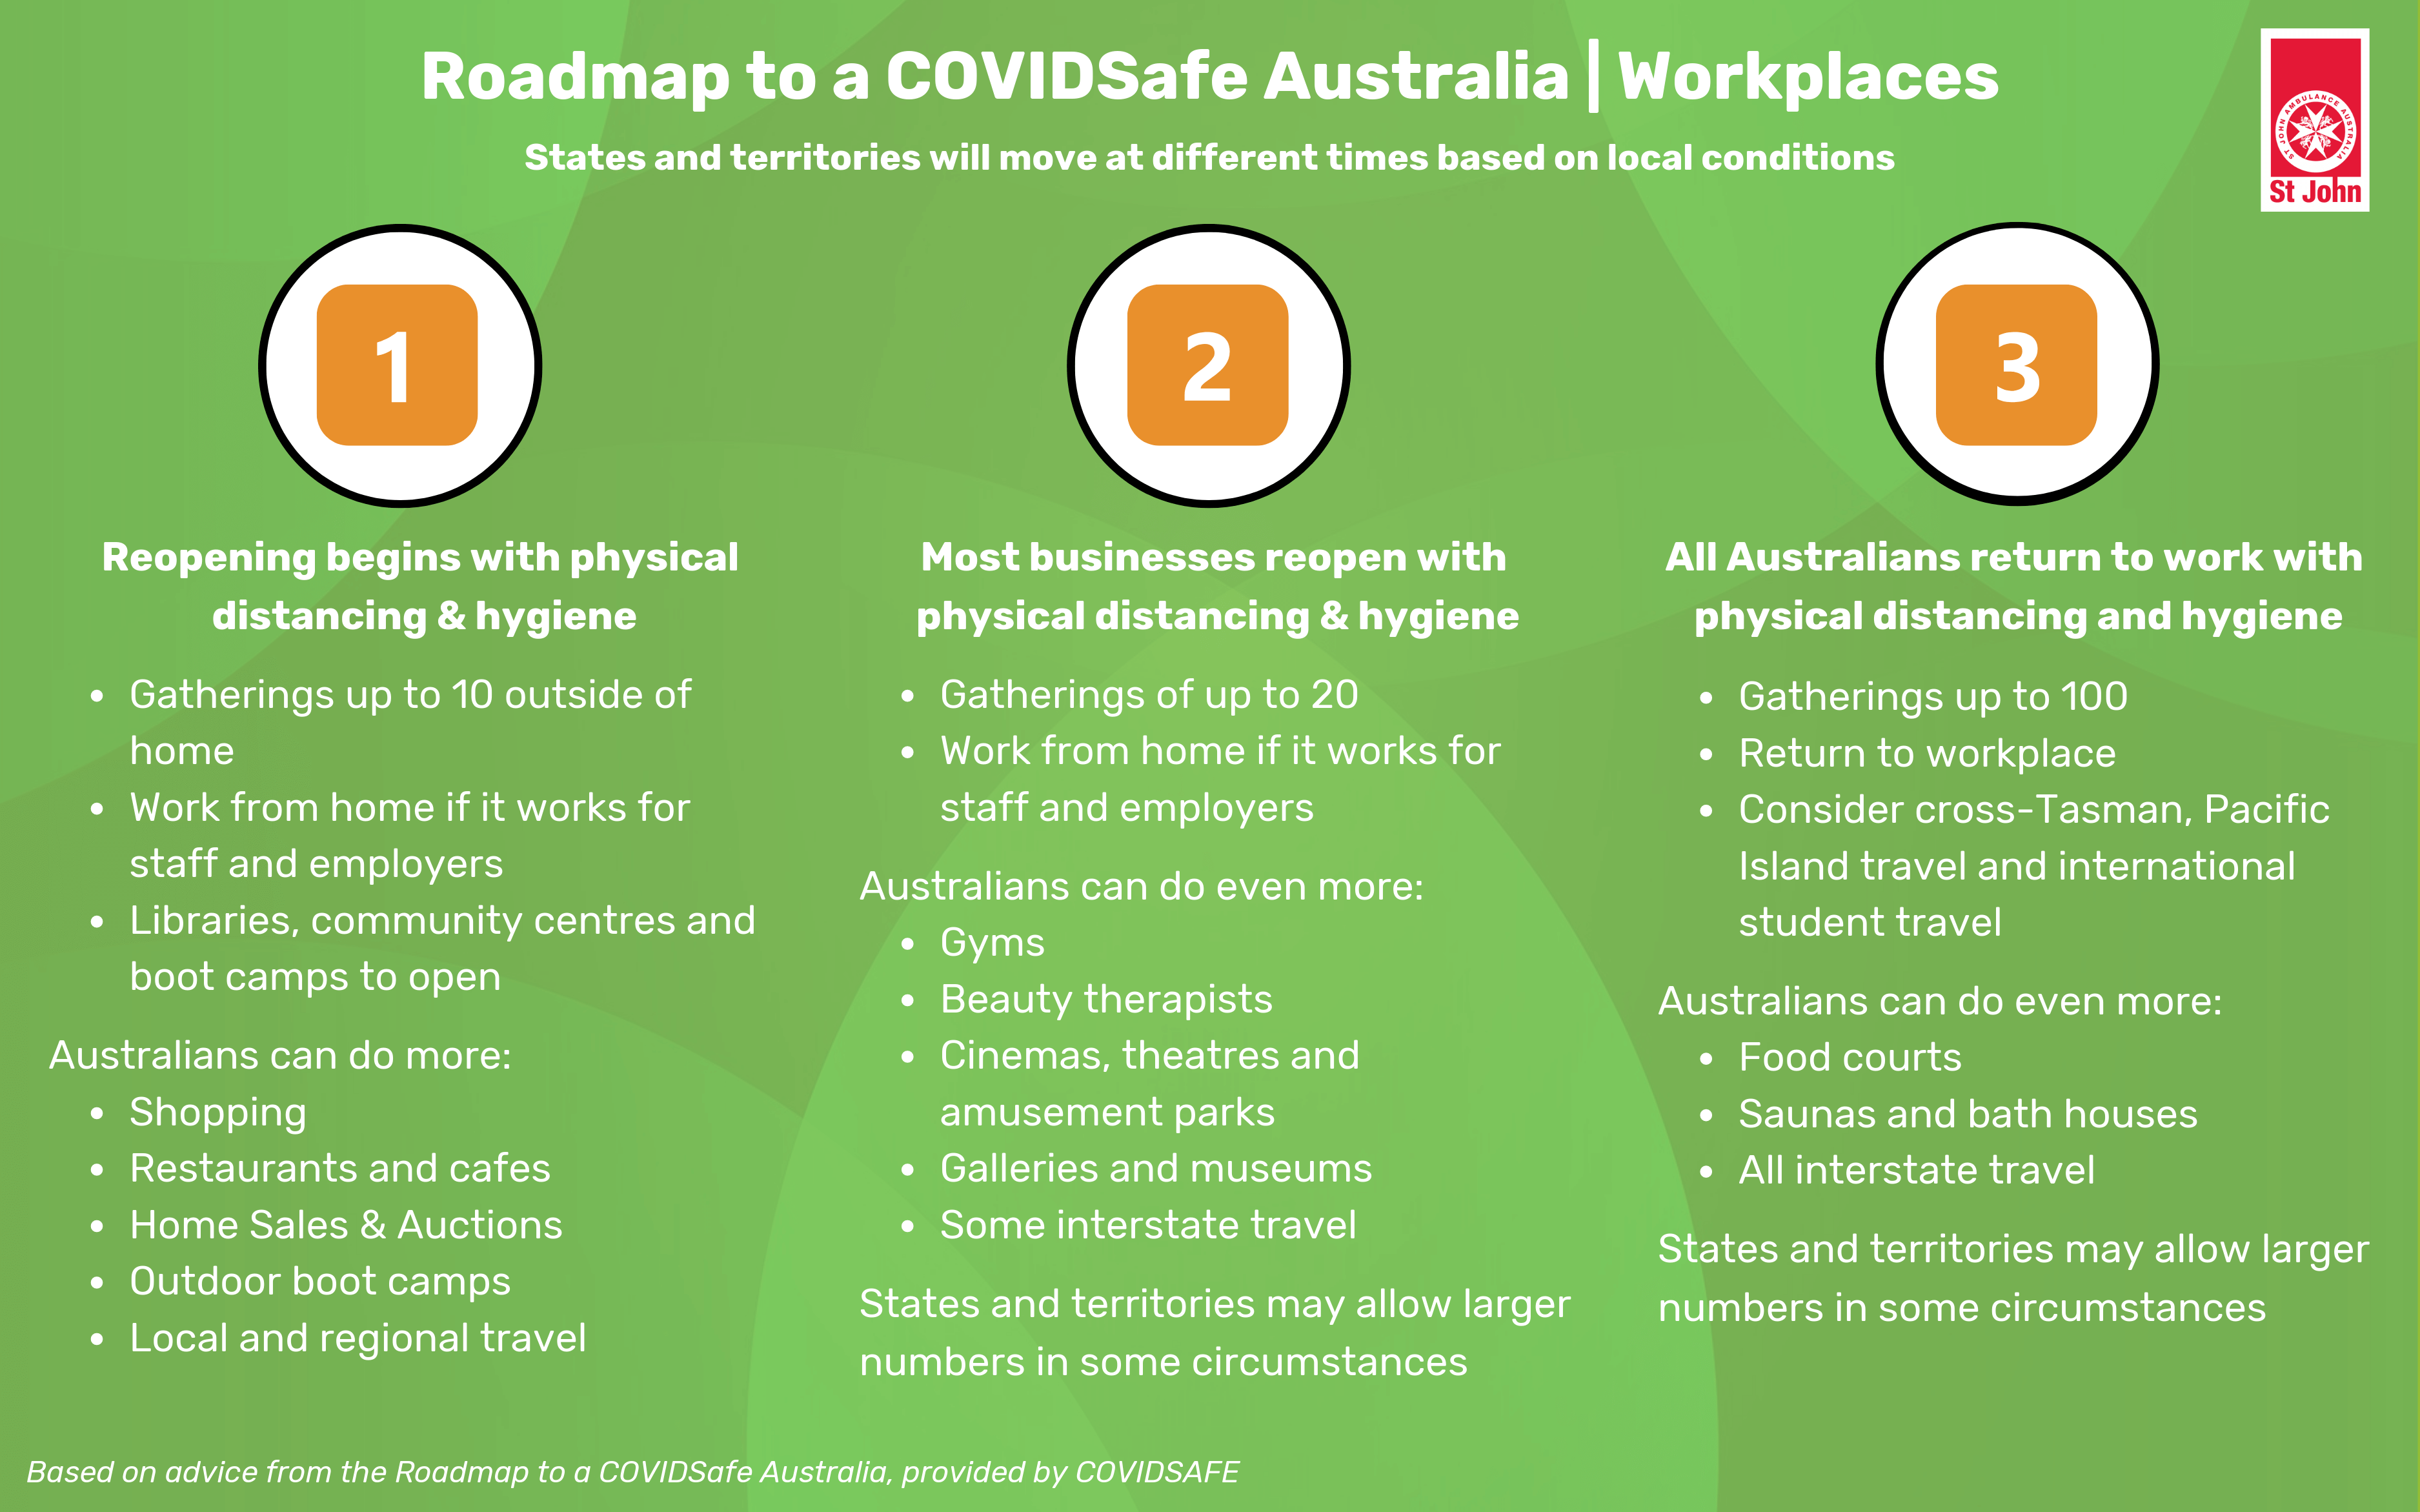 Roadmap to a COVIDSafe Australia for Workplaces and Businesses